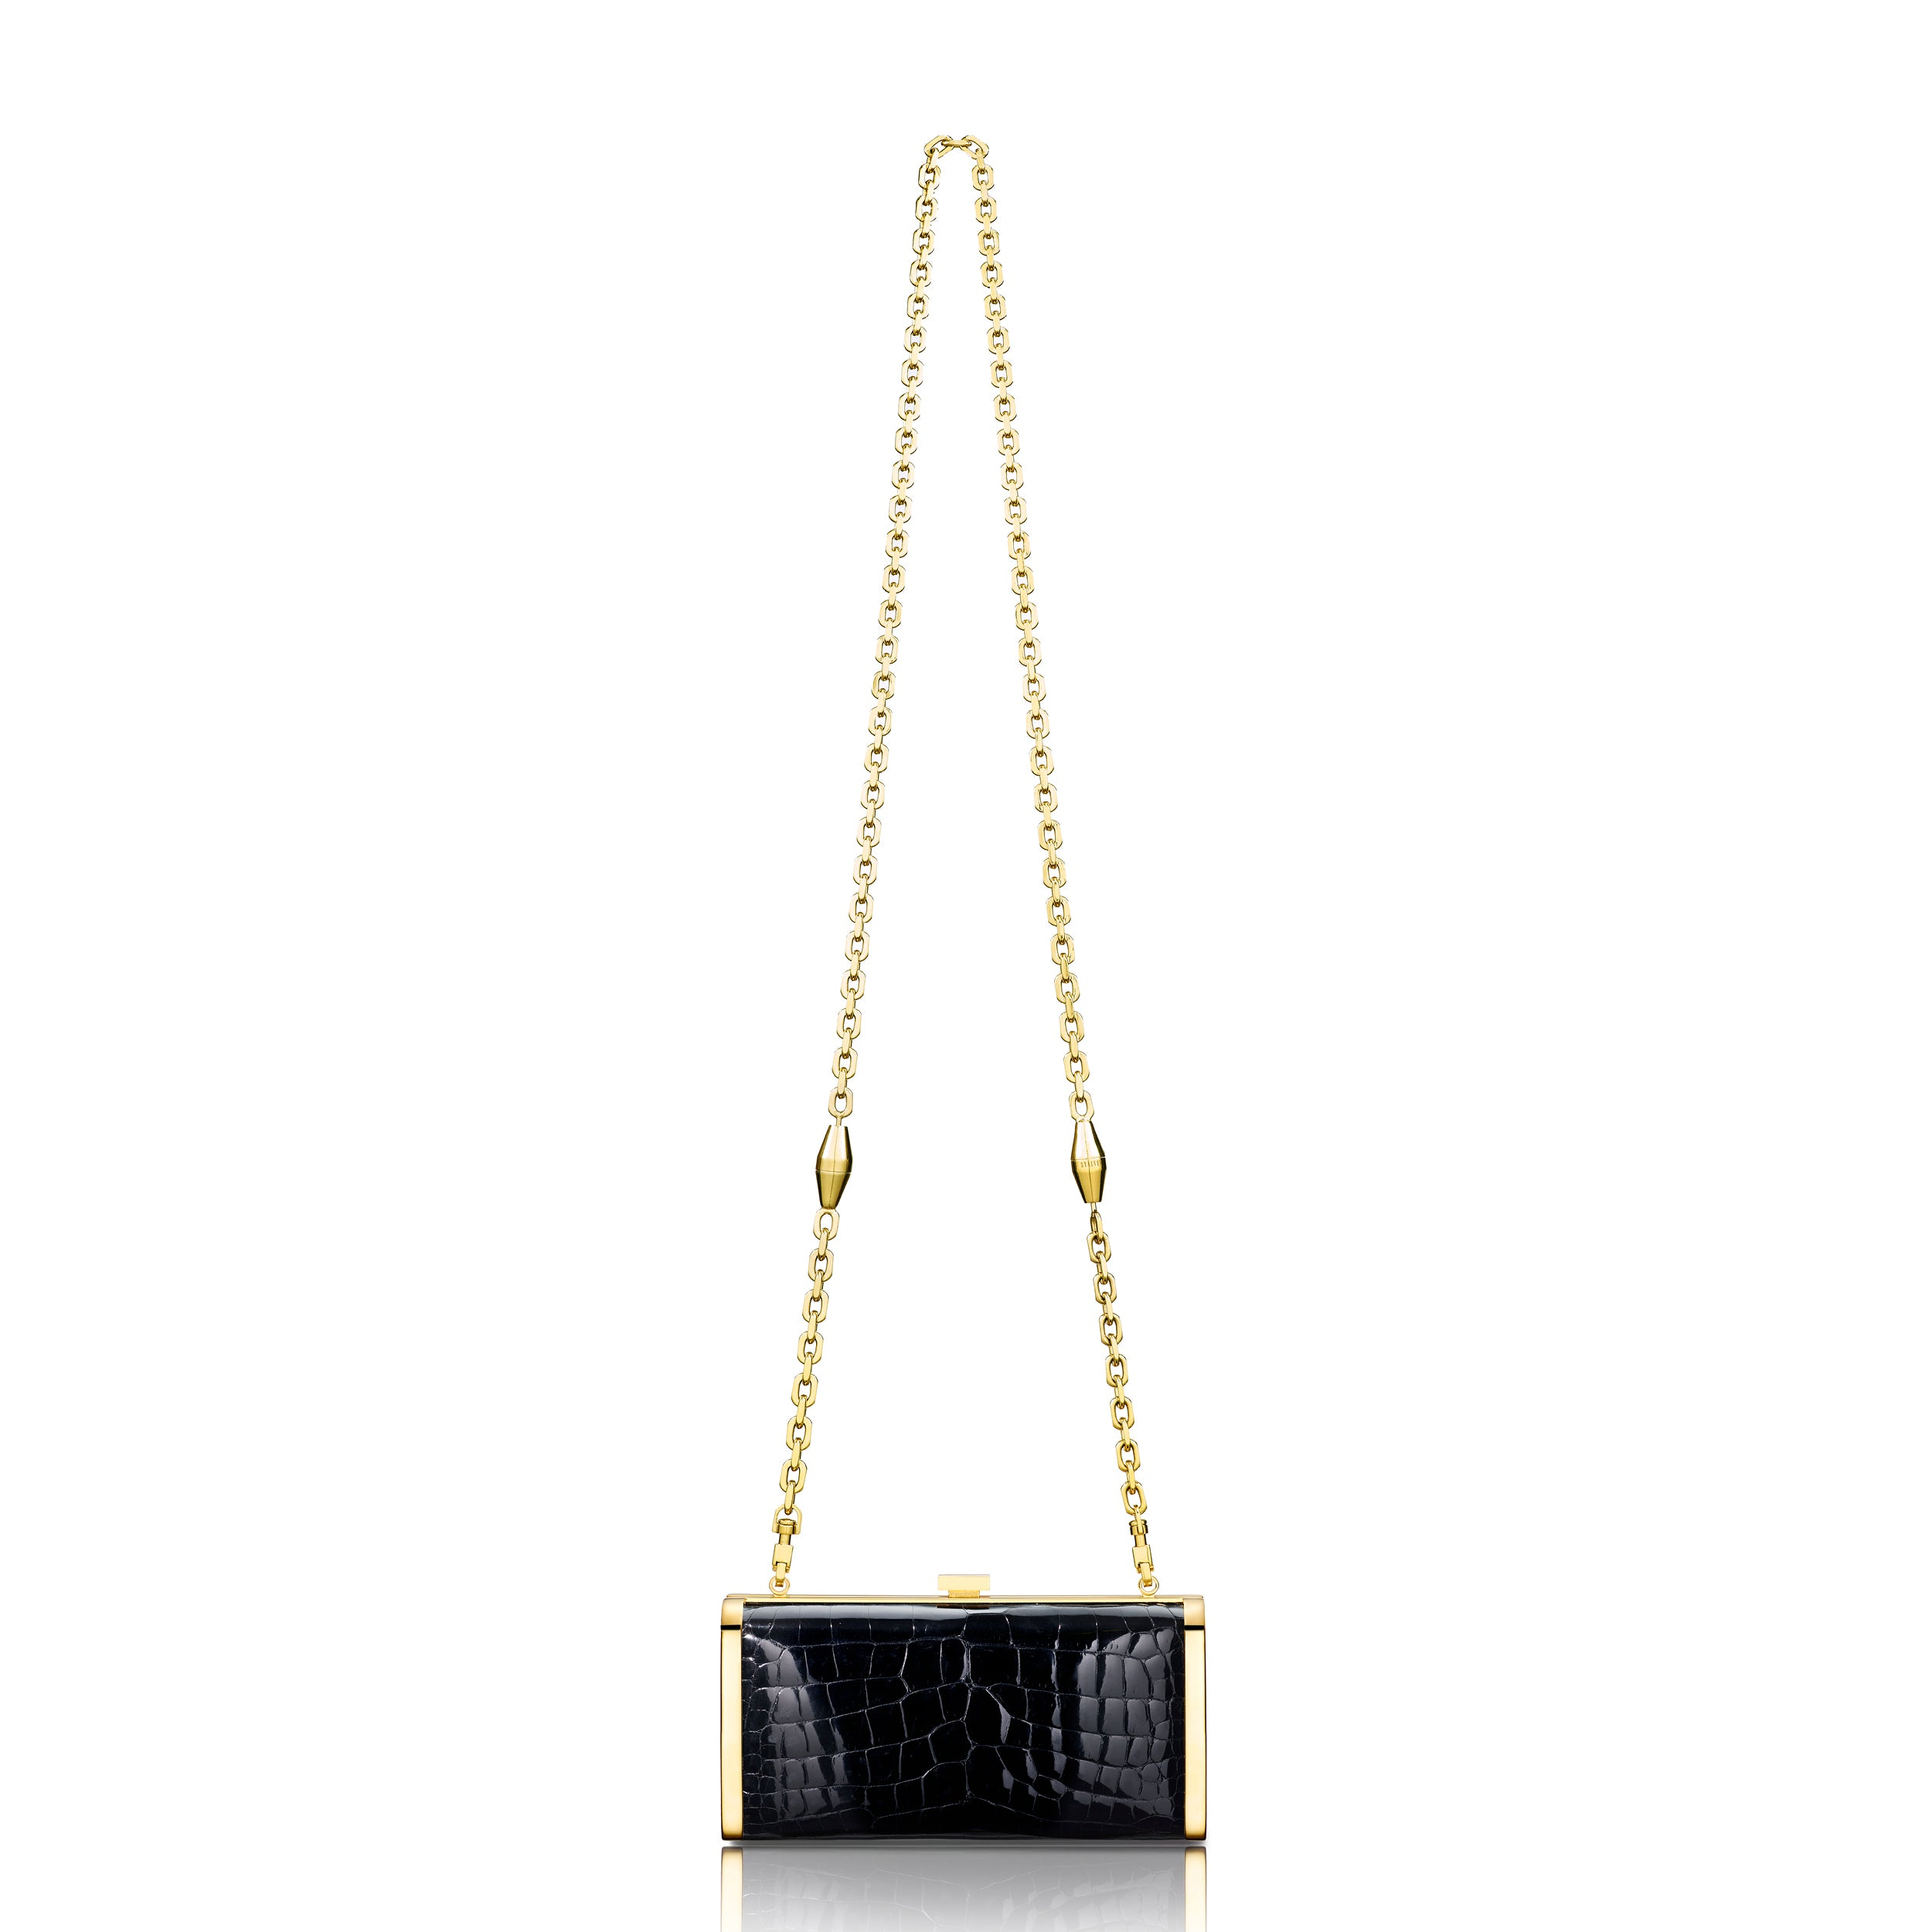 Square Clutch - Black Alligator